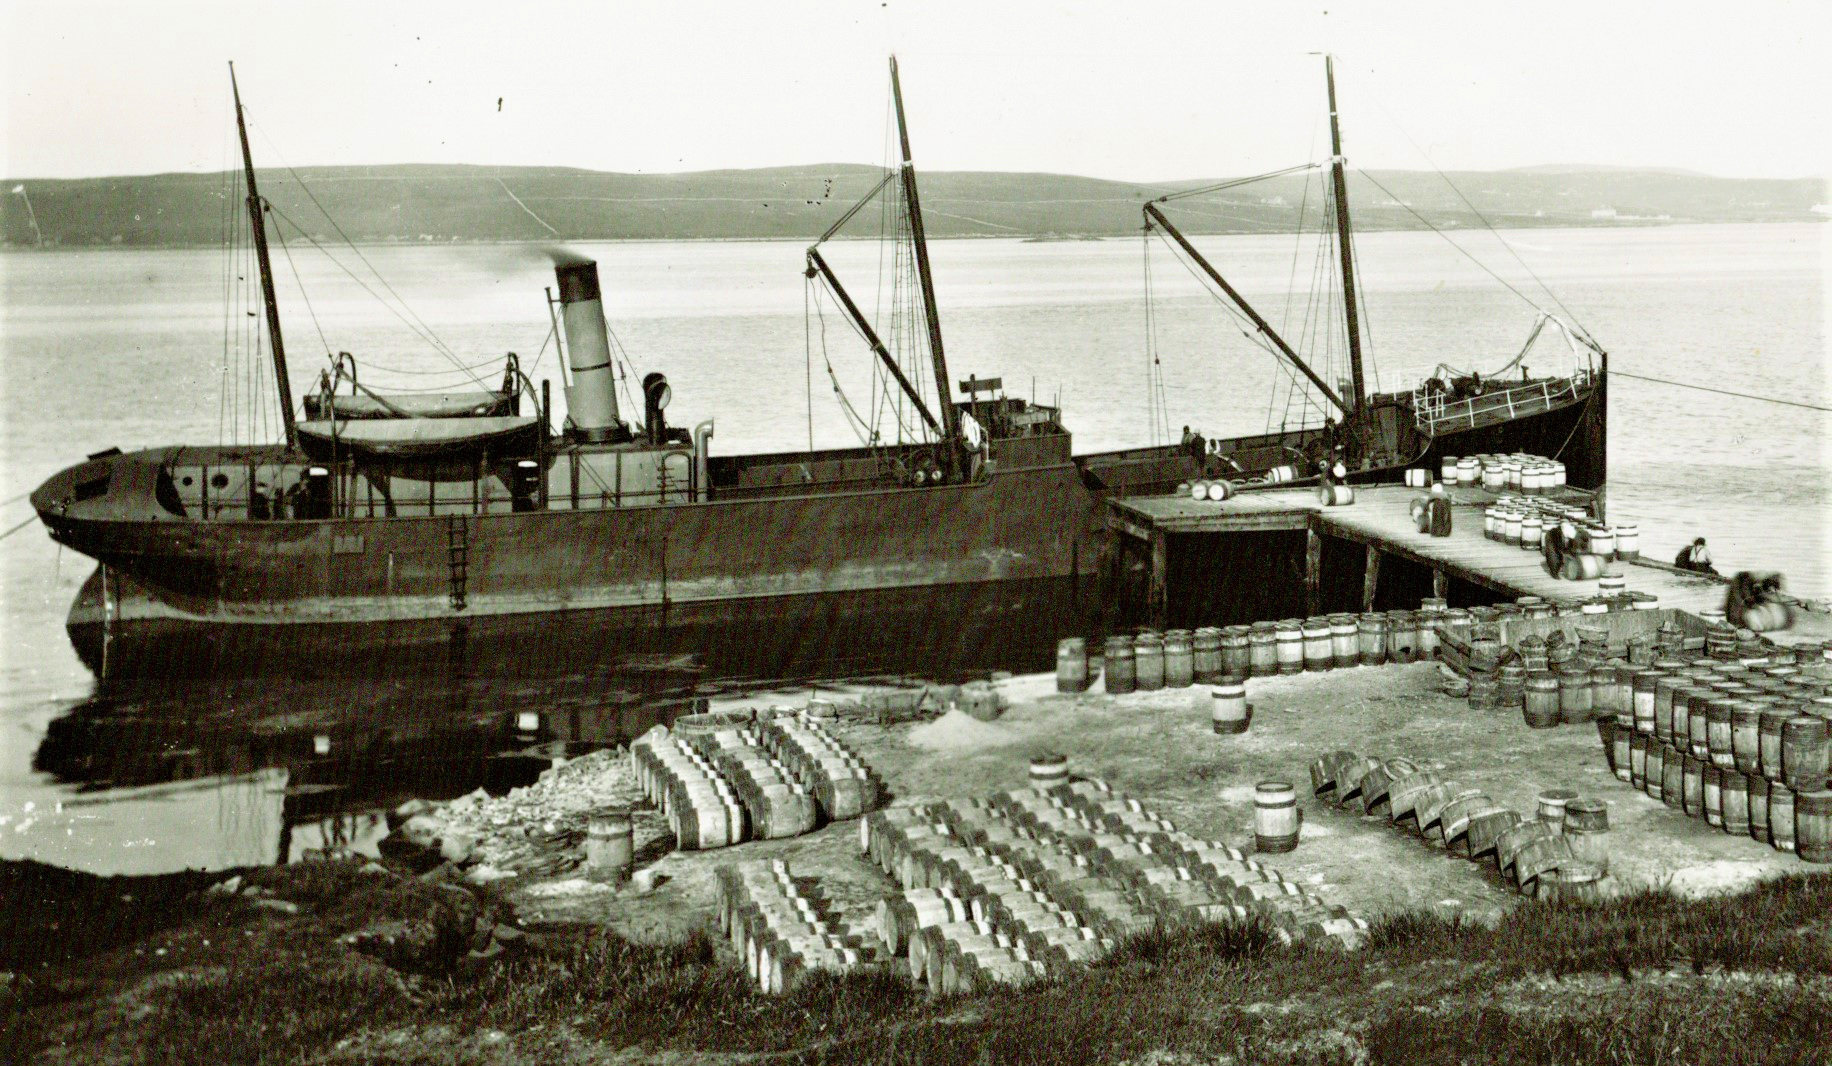 SS Robin loading a barrel cargo of salted Herrings, Lerwick, Scotland. c 1892